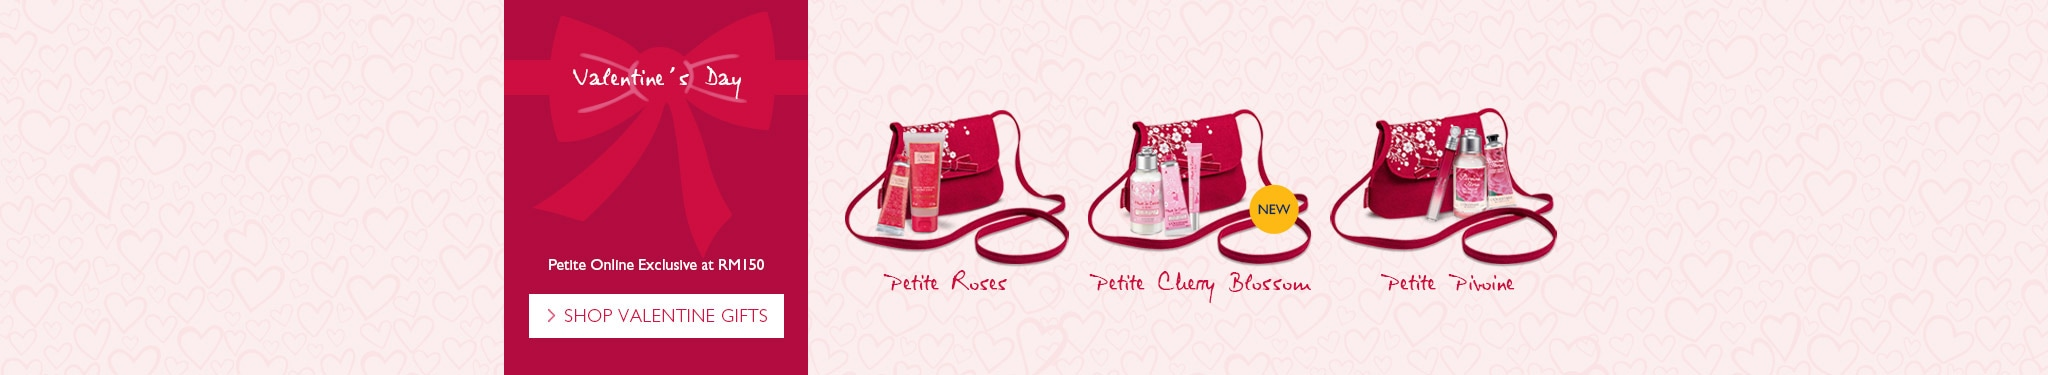 Pamper your valentine with L'OCCITANE!